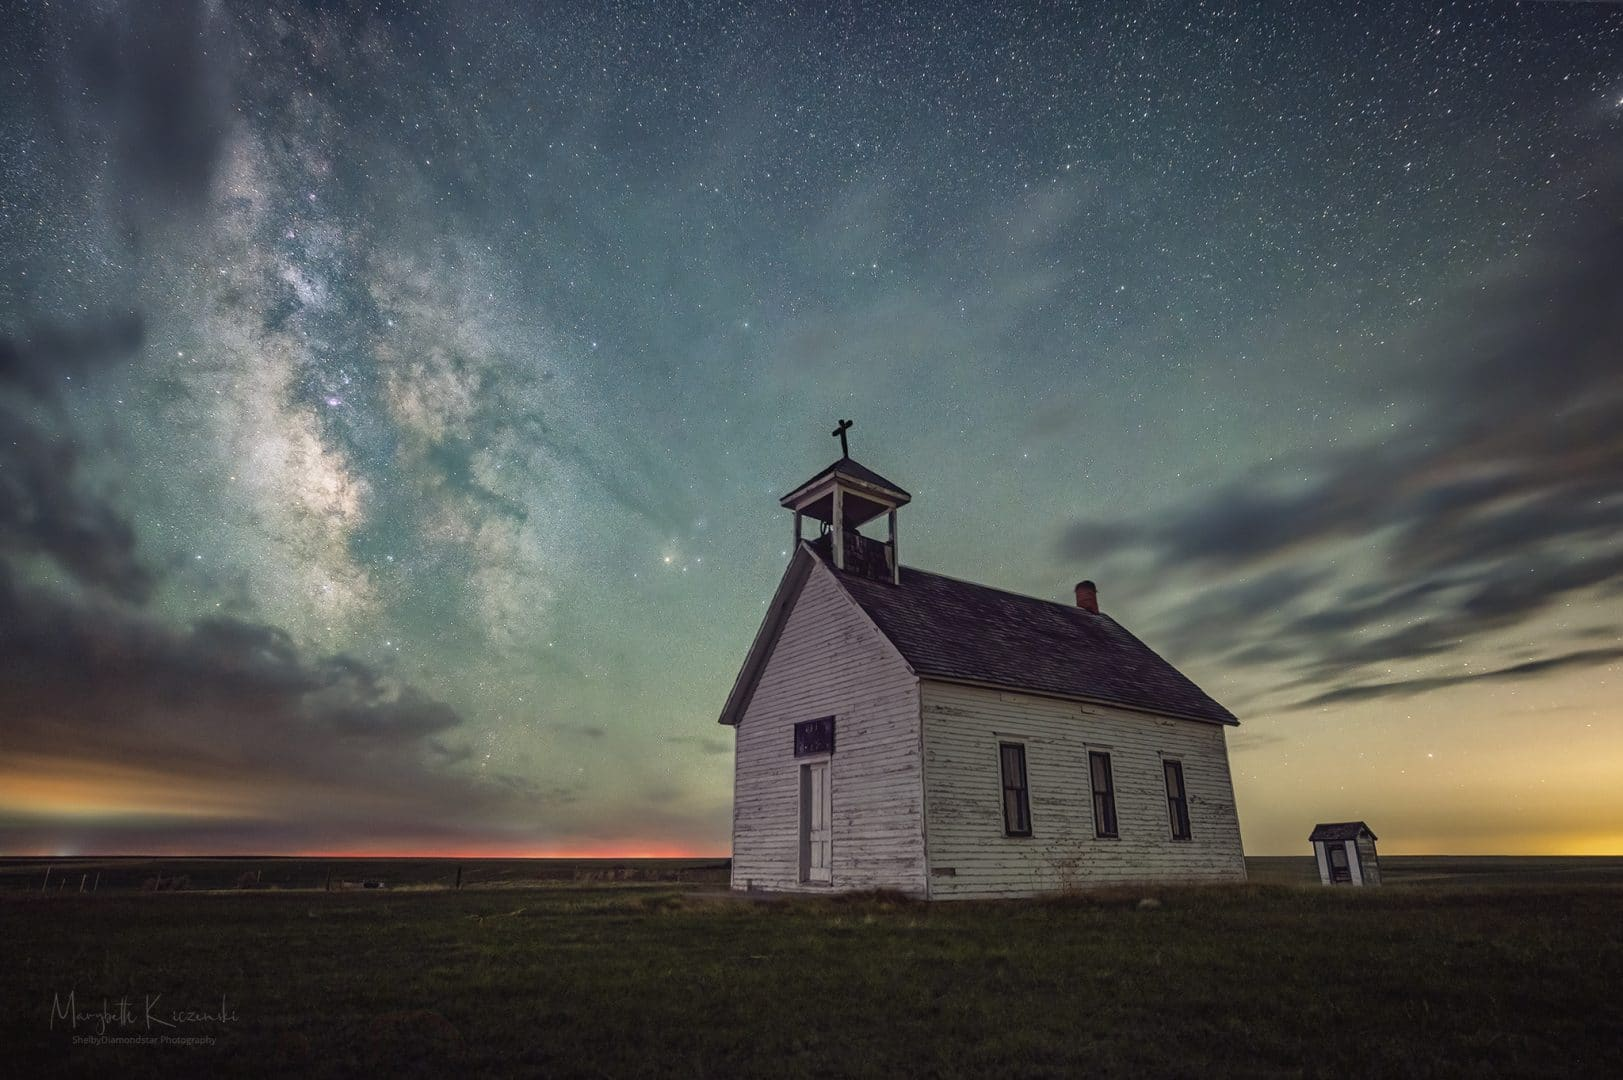 Alton Church - Outside of Denver, CO.  Nikon Z6/Nikkor 14-24mm. Tracked/Untracked shot. Copyright 2020 MaryBeth Kiczenski.